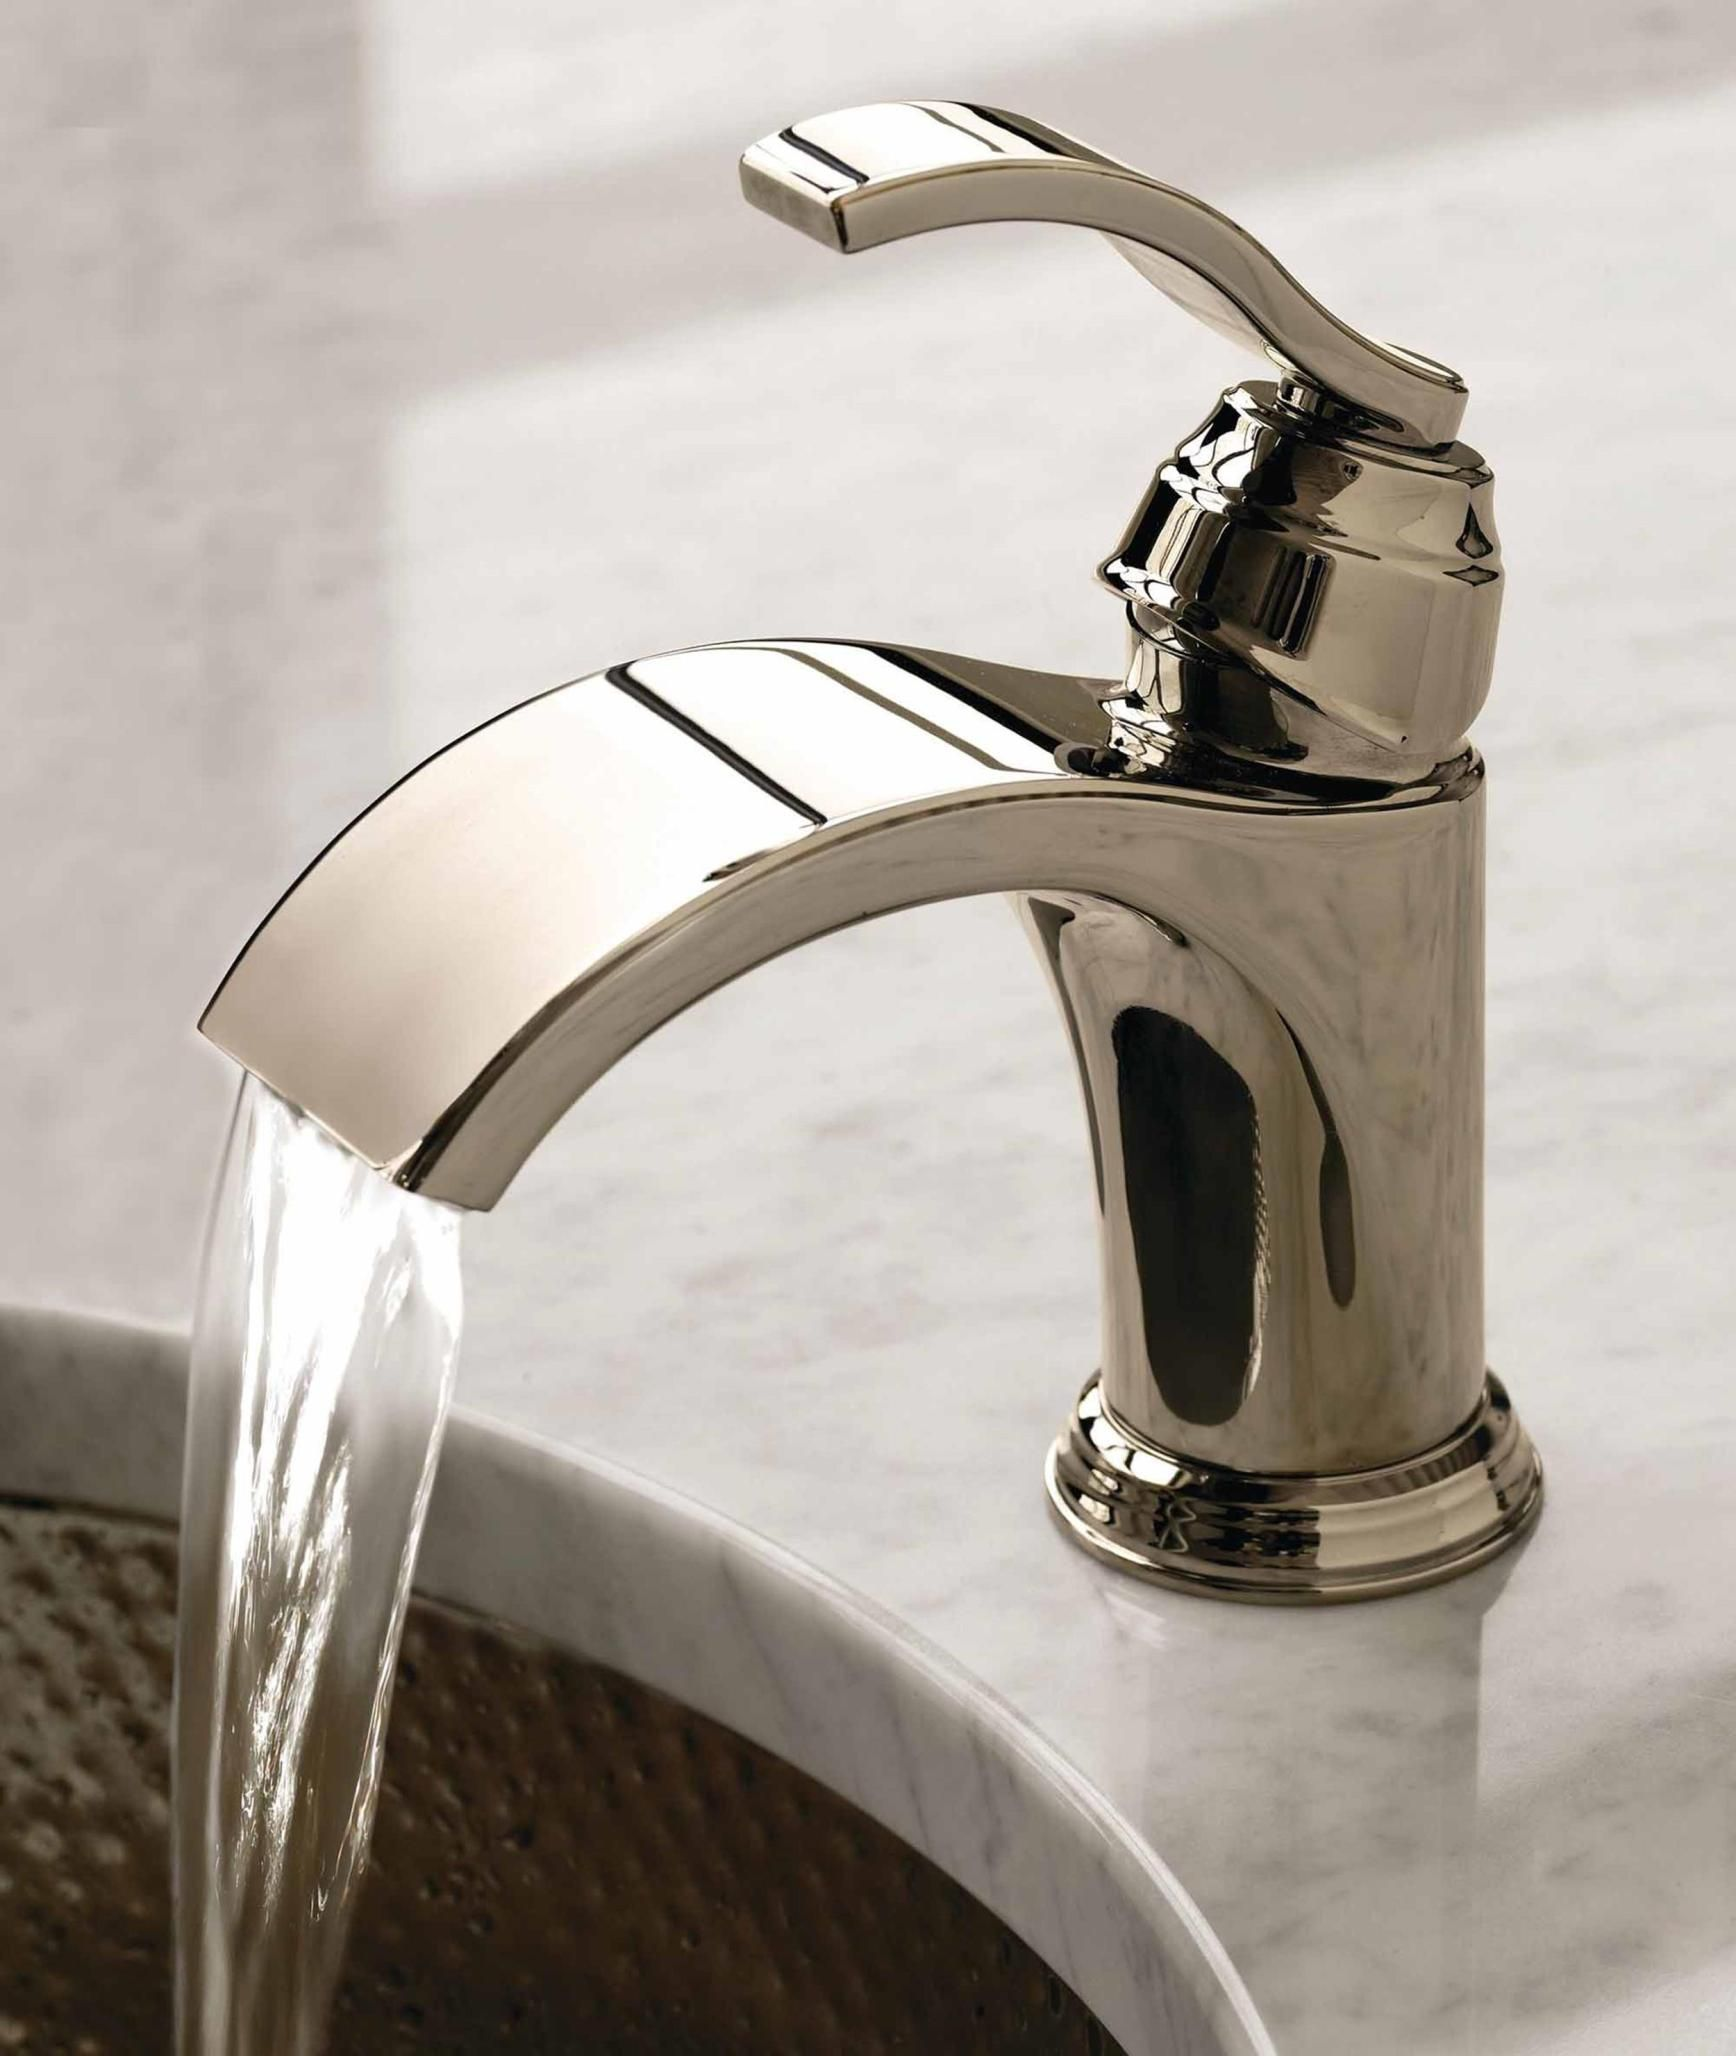 40 Faucets at Lowes to Make Refreshing Changes to Your Bath and ...